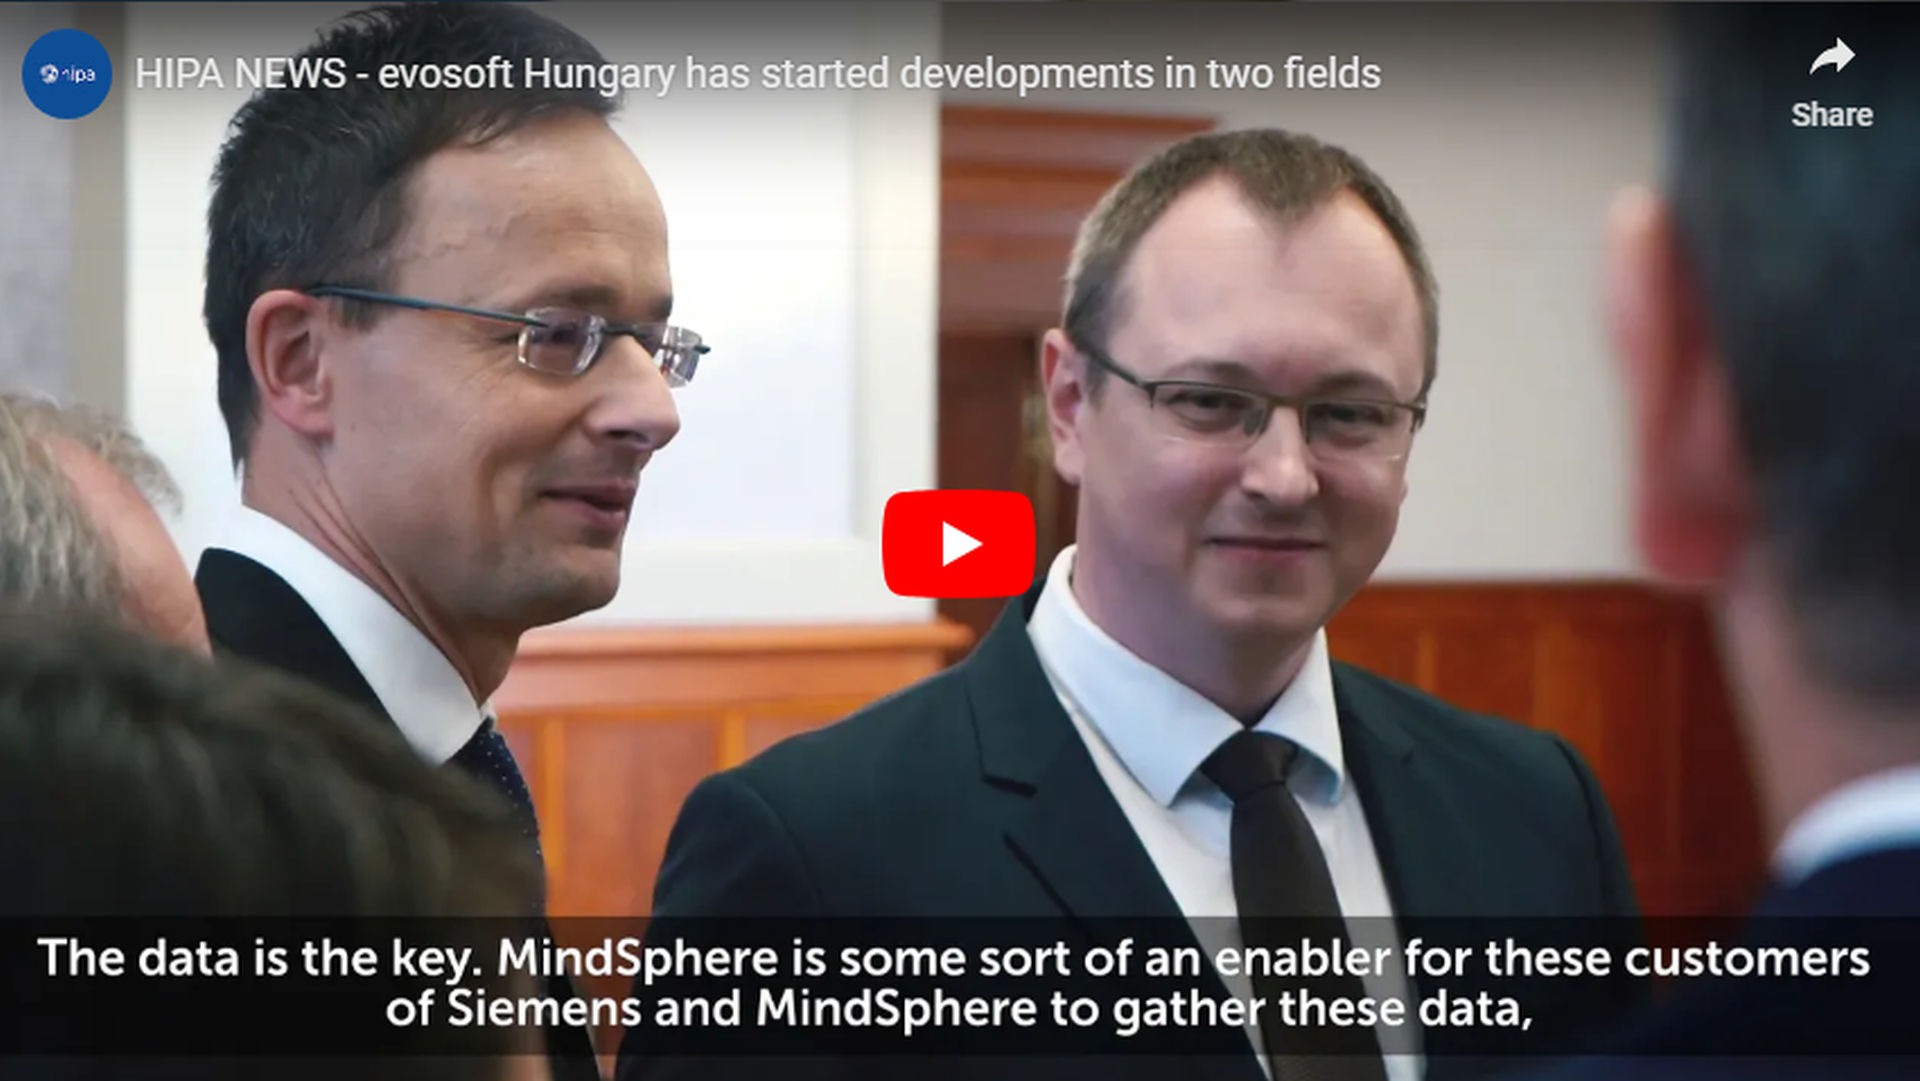 One of the top software houses in Hungary has started developments in two fields - VIDEO REPORT